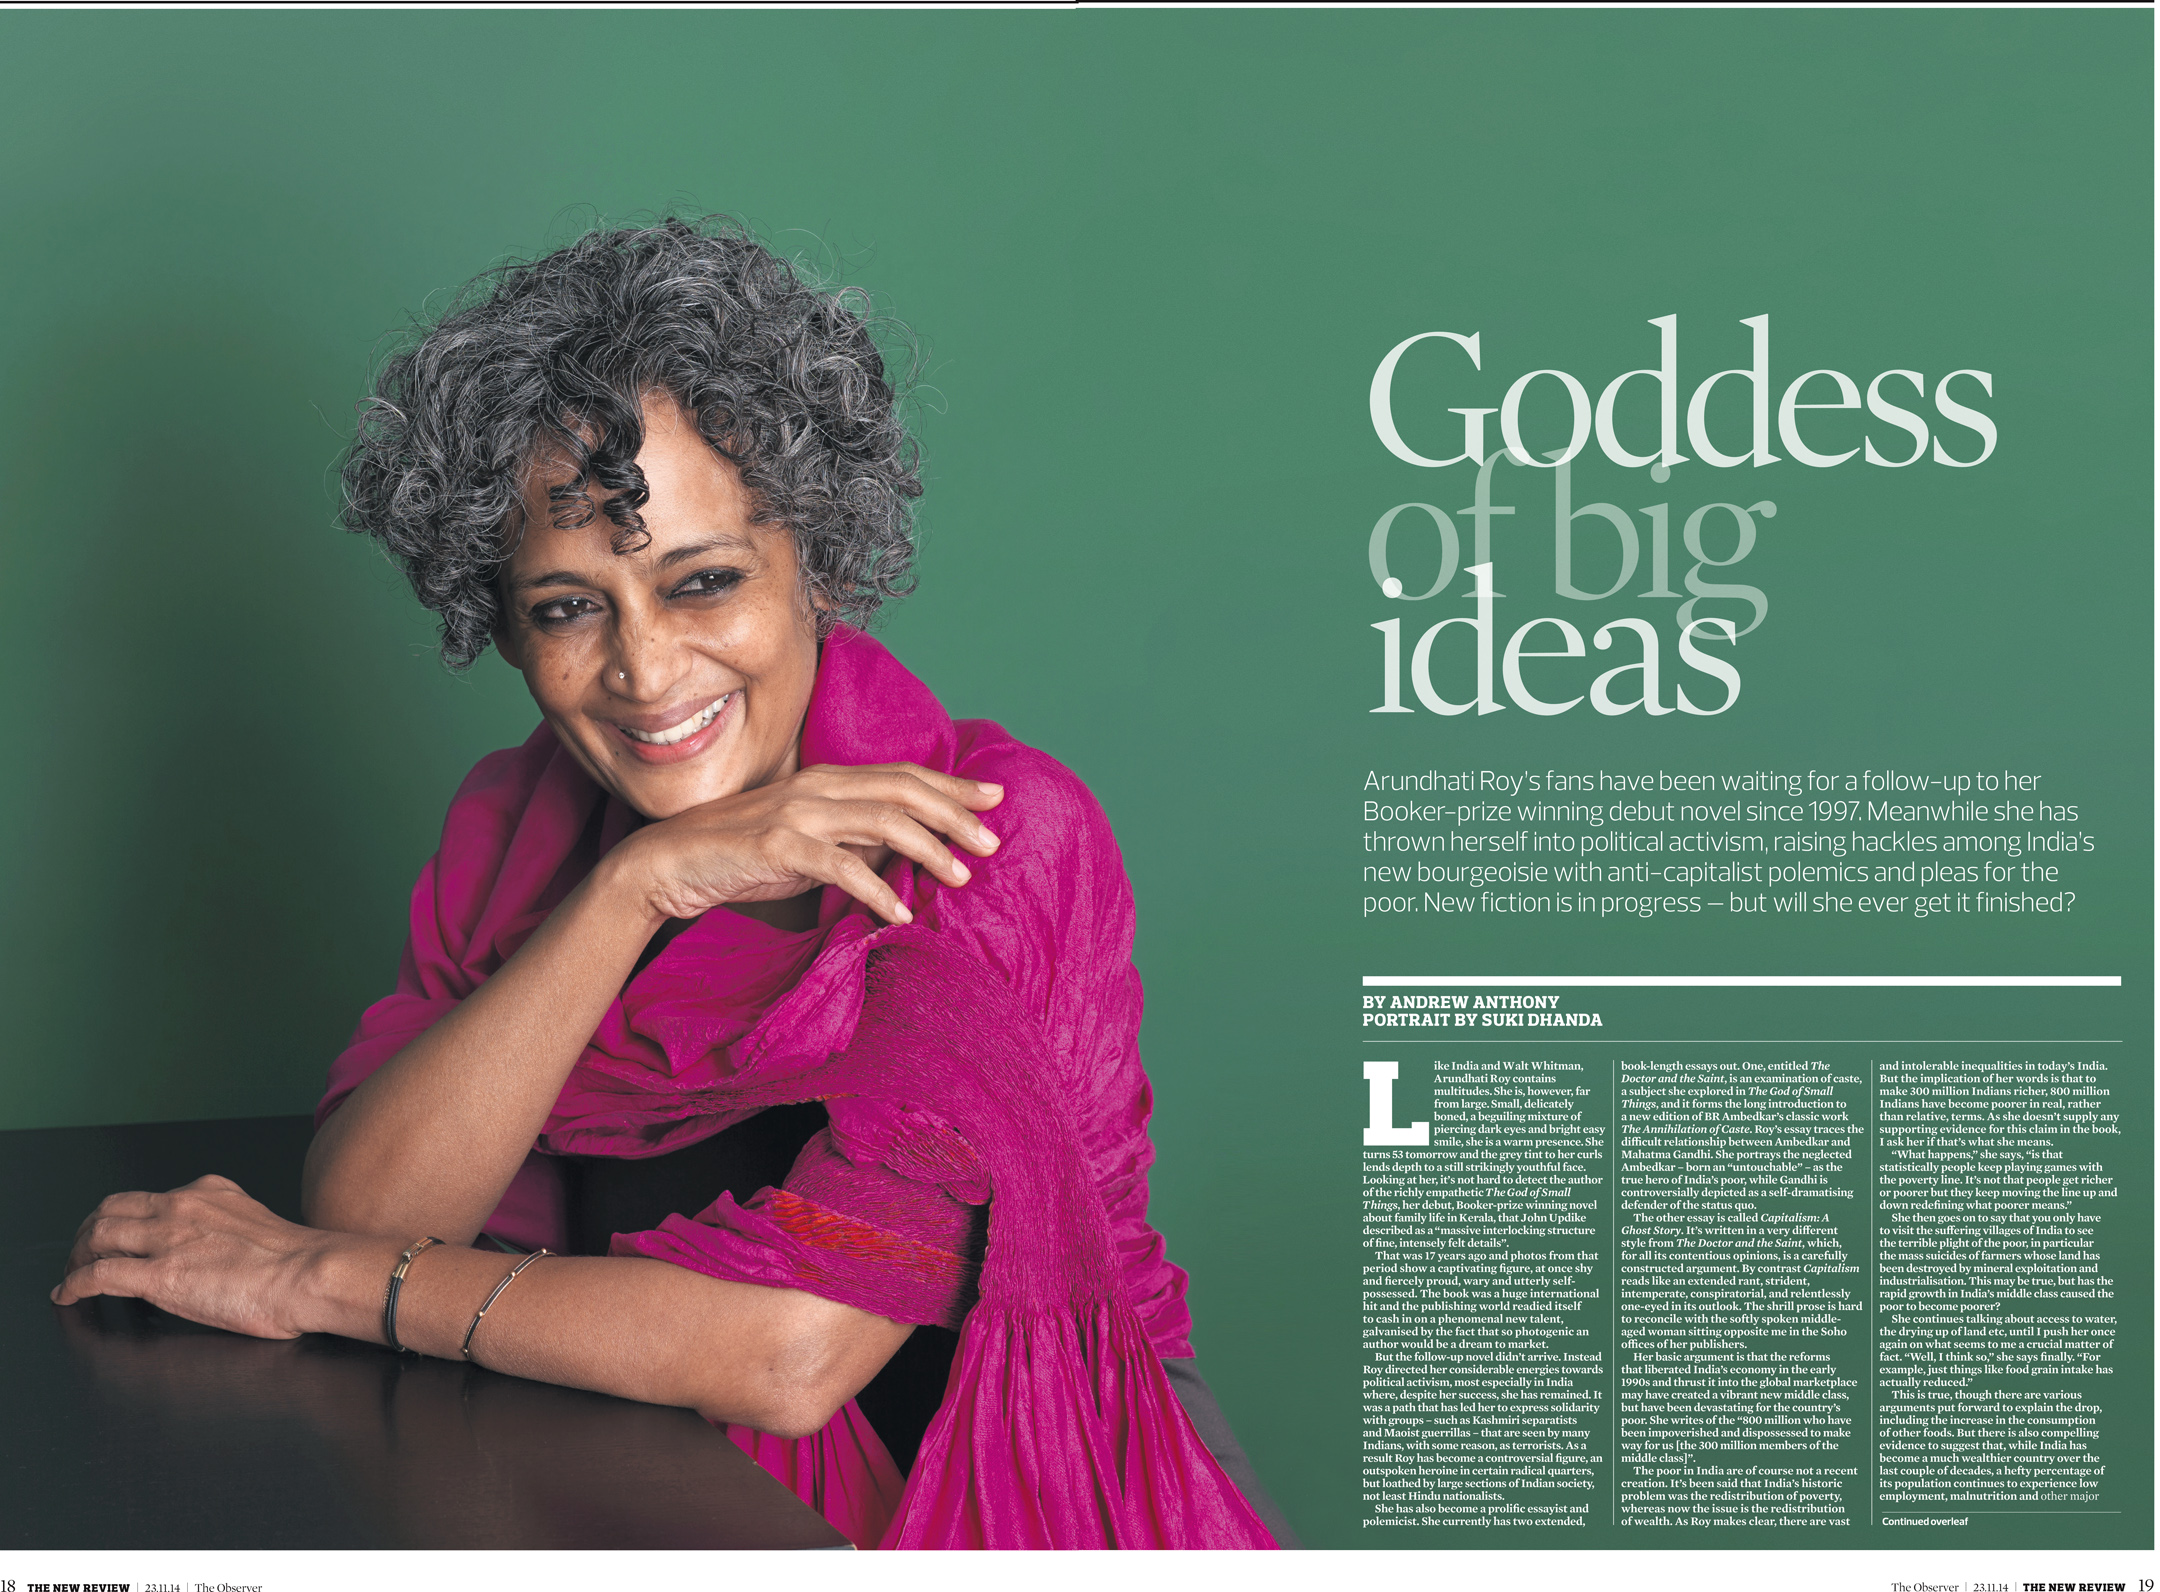 the god of small things arundhati roy essay The god of small things essays and book reviews the god of small things research papers on the indian novelist arundhati roy essays on arundhati roy's first novel, the god of small things, illustrates the sense of india itself (or at least an impression of india that has been garnered from one who has never been there): sweeping, chaotic .